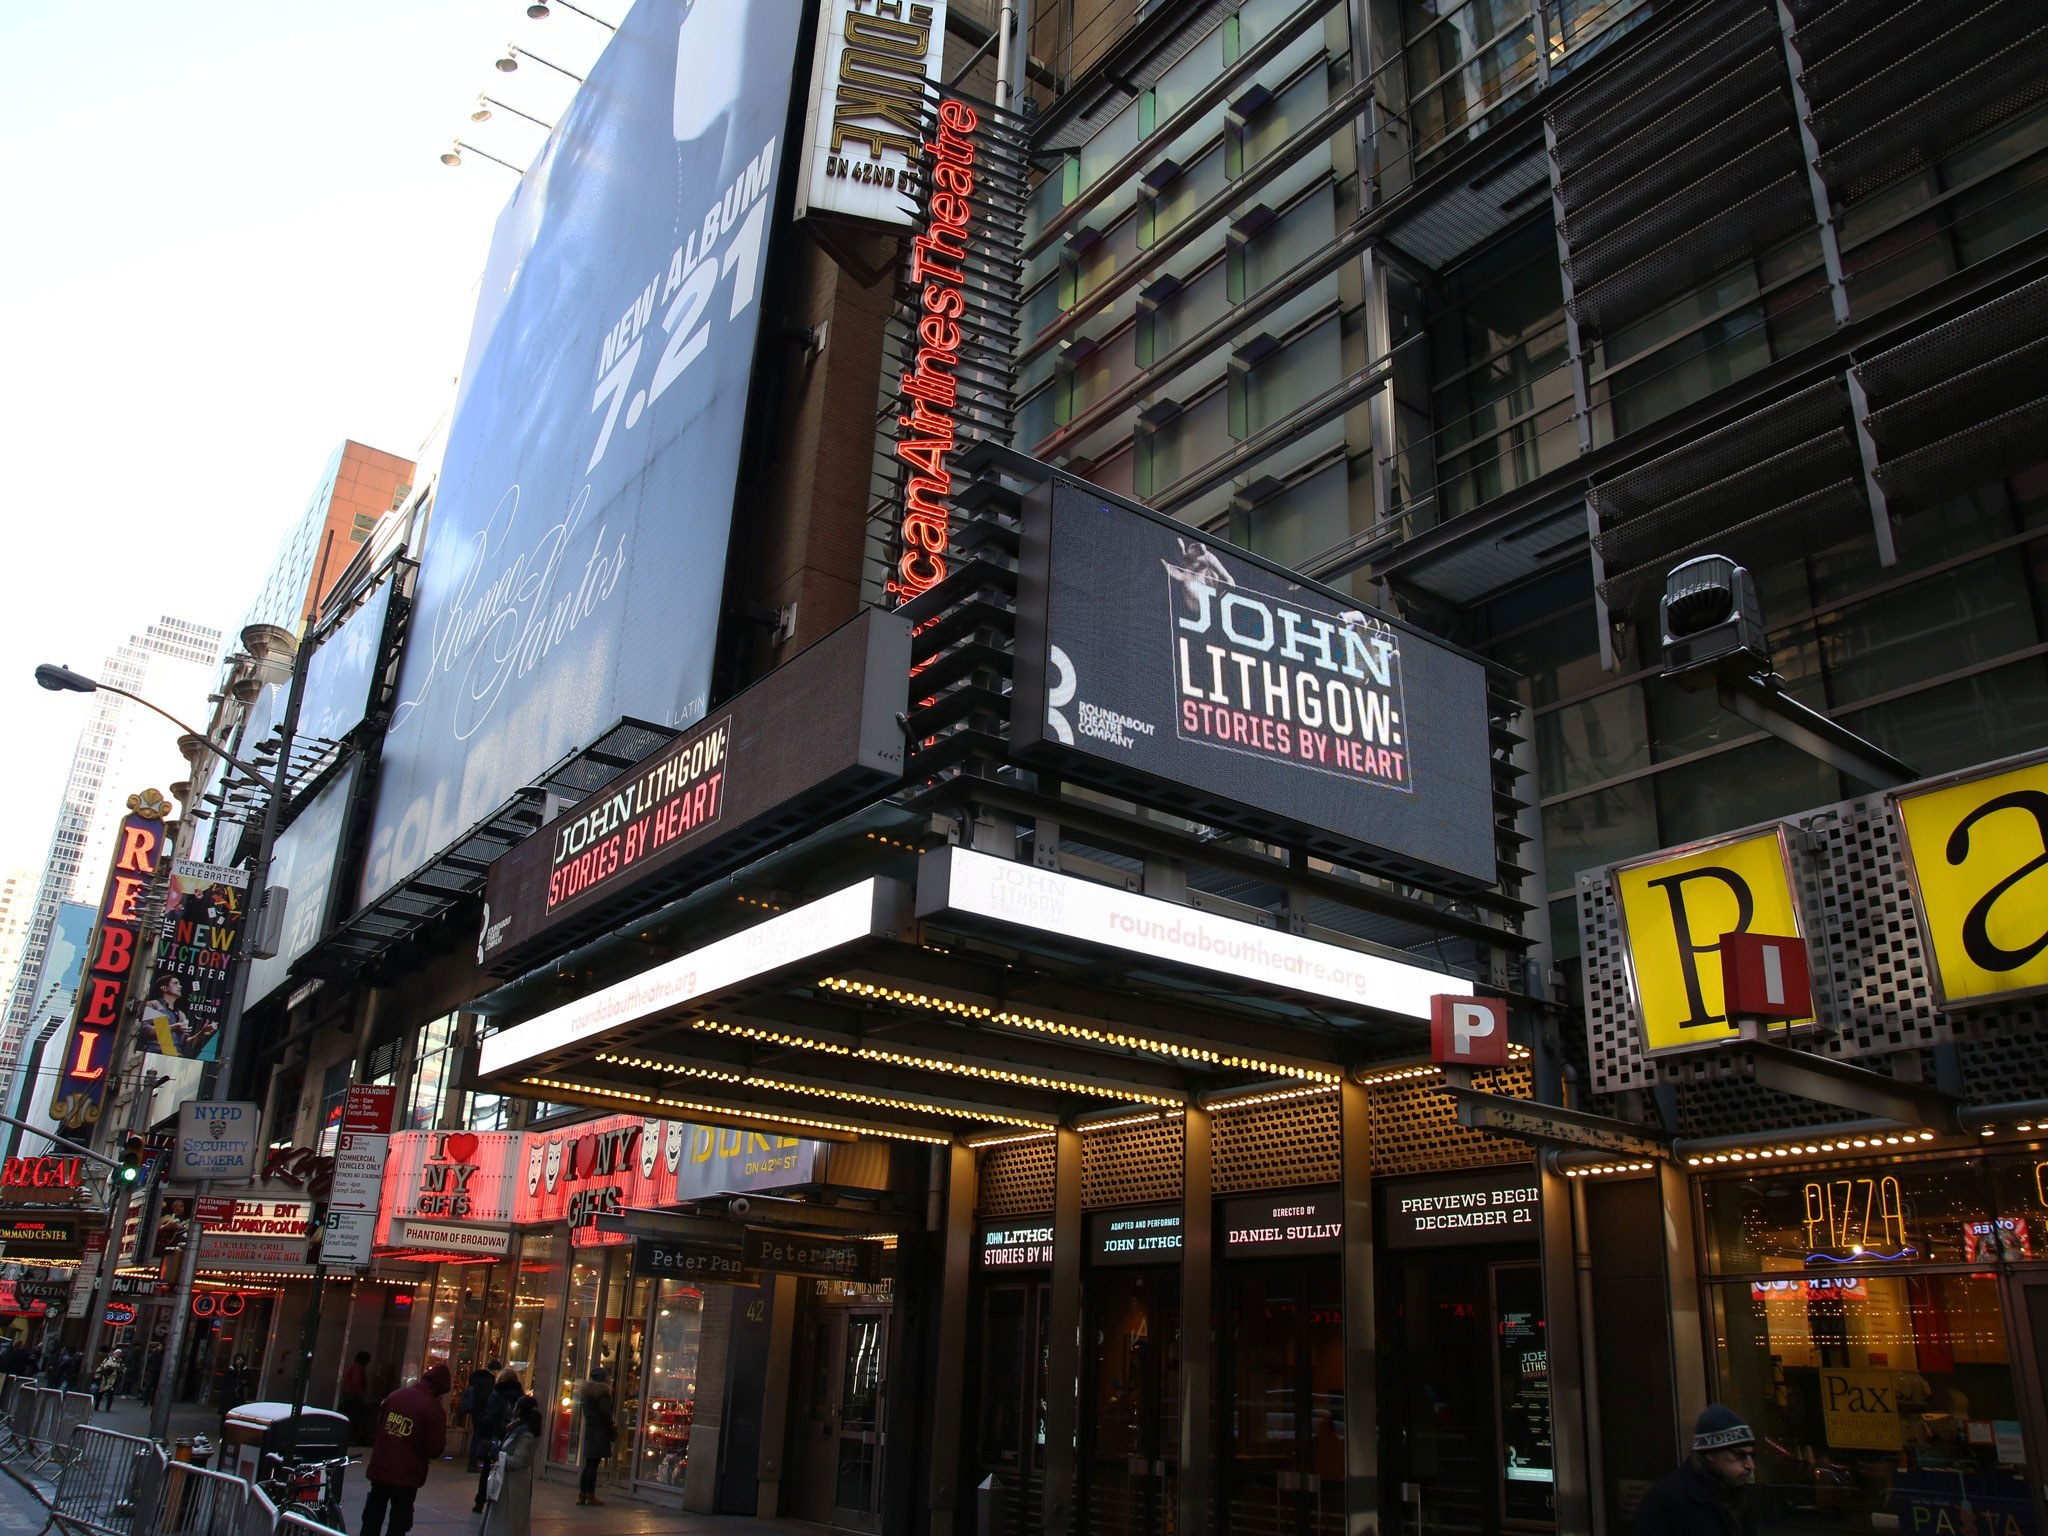 John Lithgow: Stories by Heart Broadway Theatre Marquee